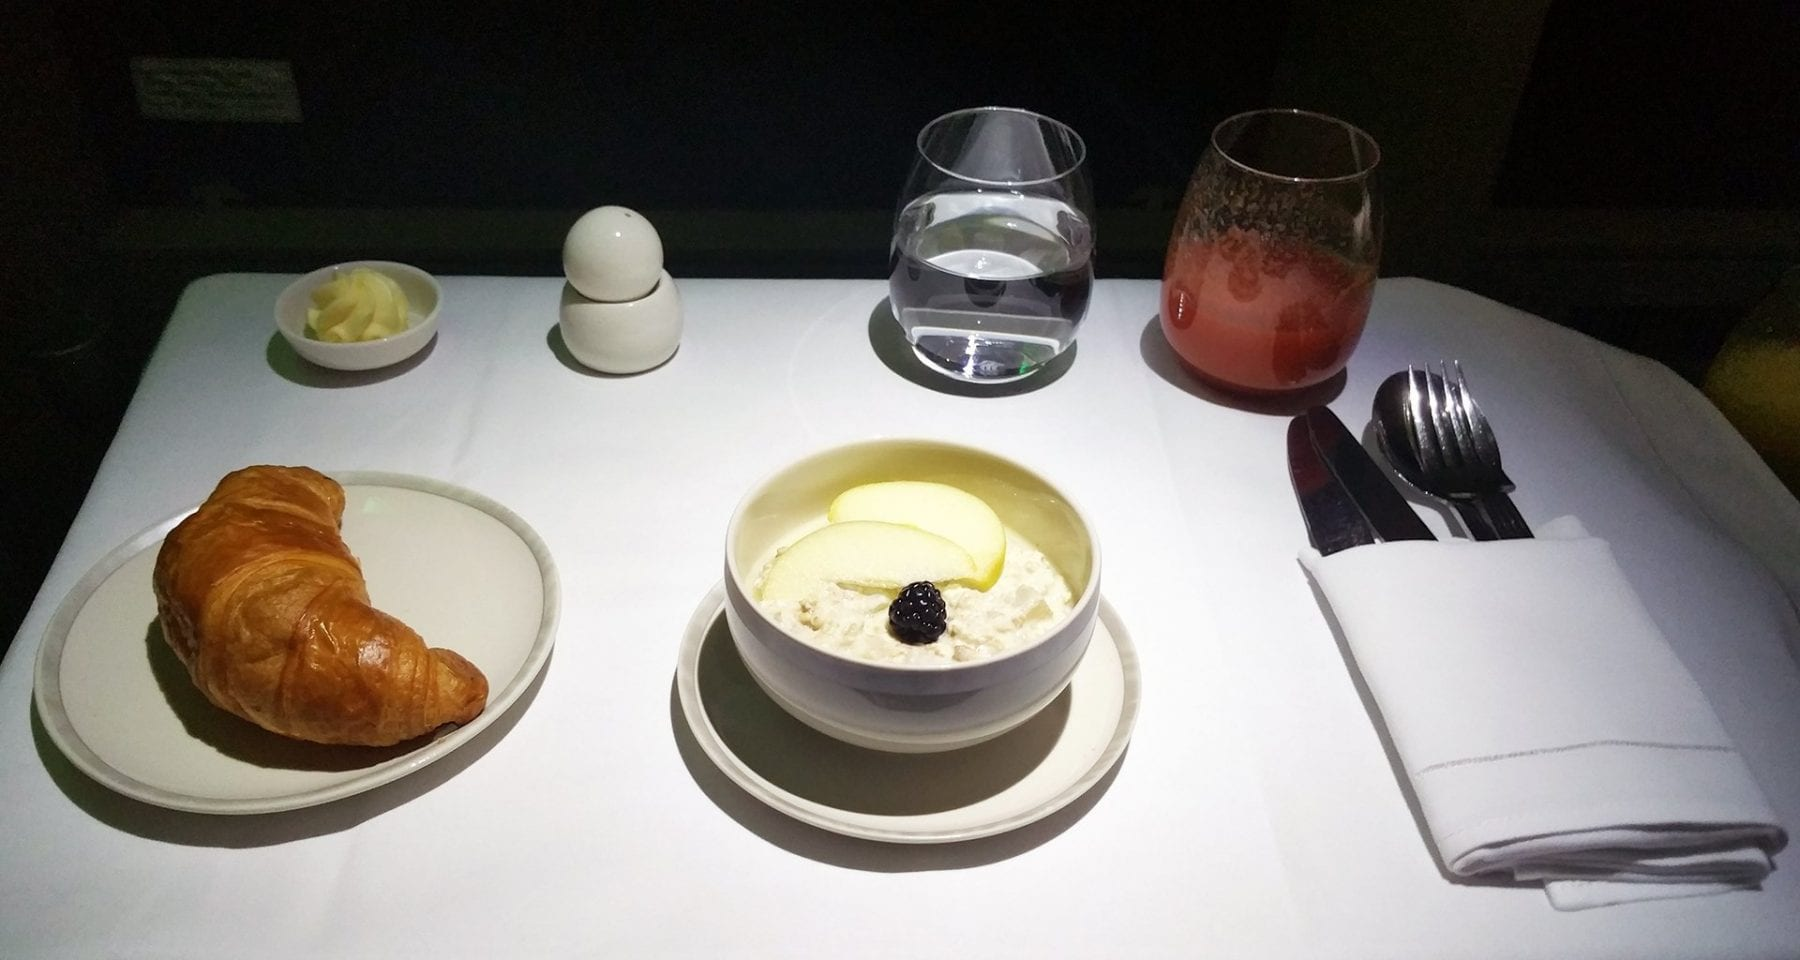 Singapore Airlines business class bircher muesli